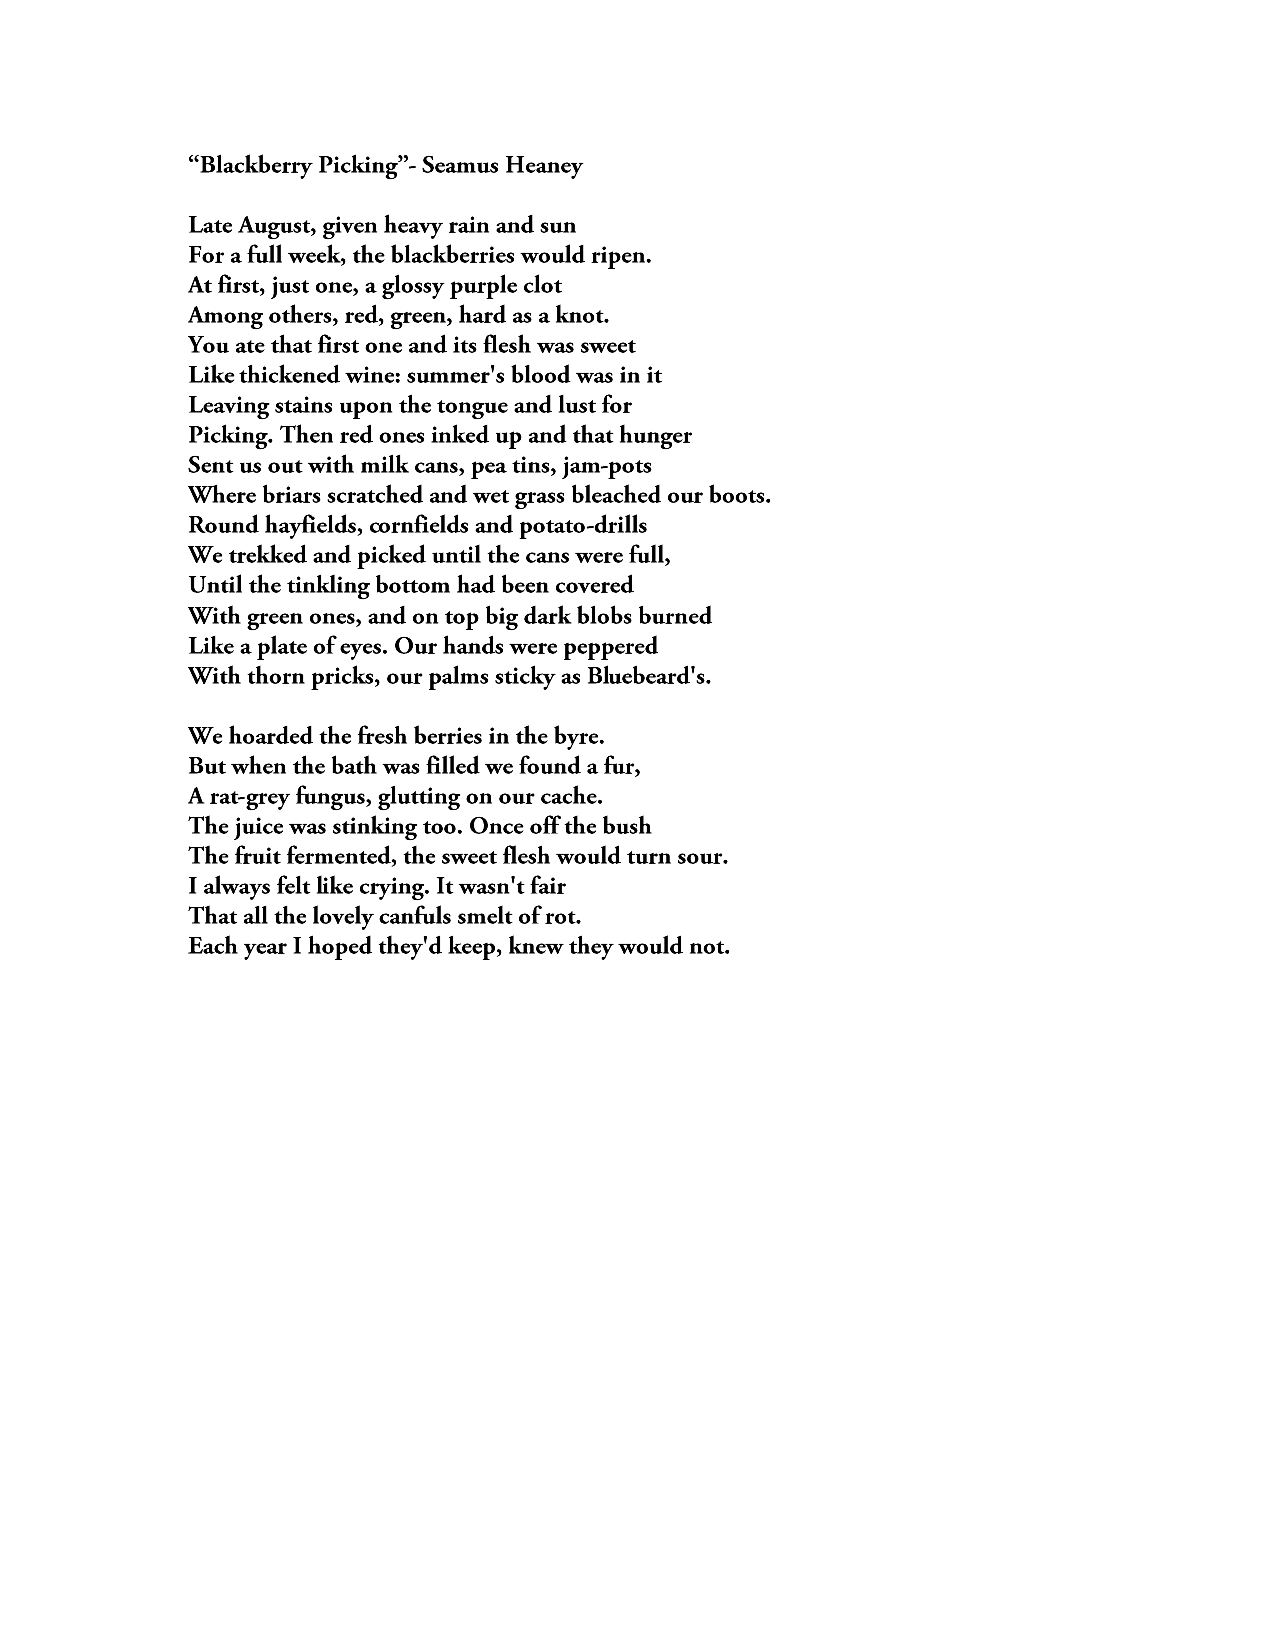 blackberry picking by seamus heaney distilled and powerful  blackberry picking by seamus heaney